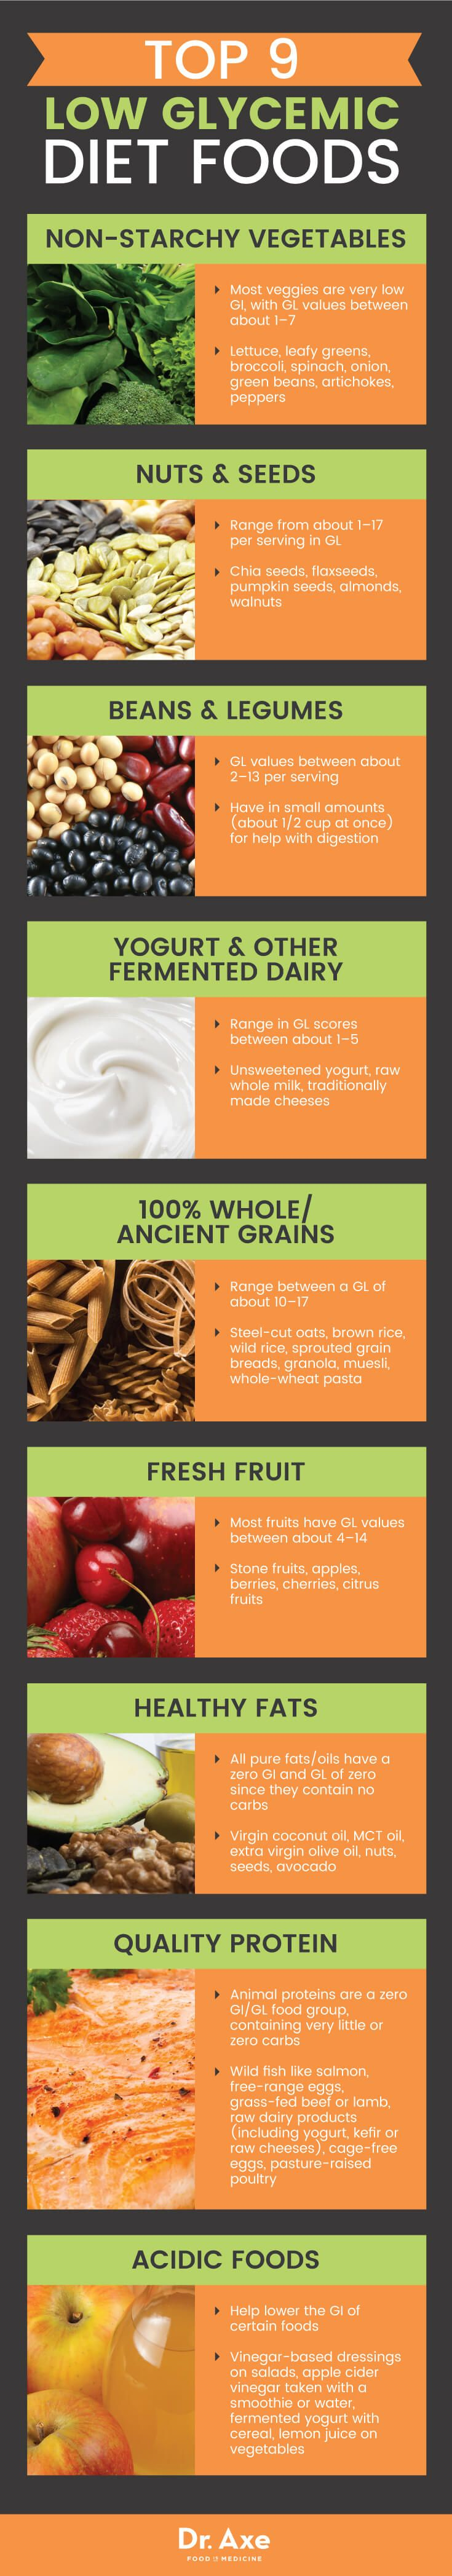 Low glycemic foods - Dr. Axe http://www.draxe.com